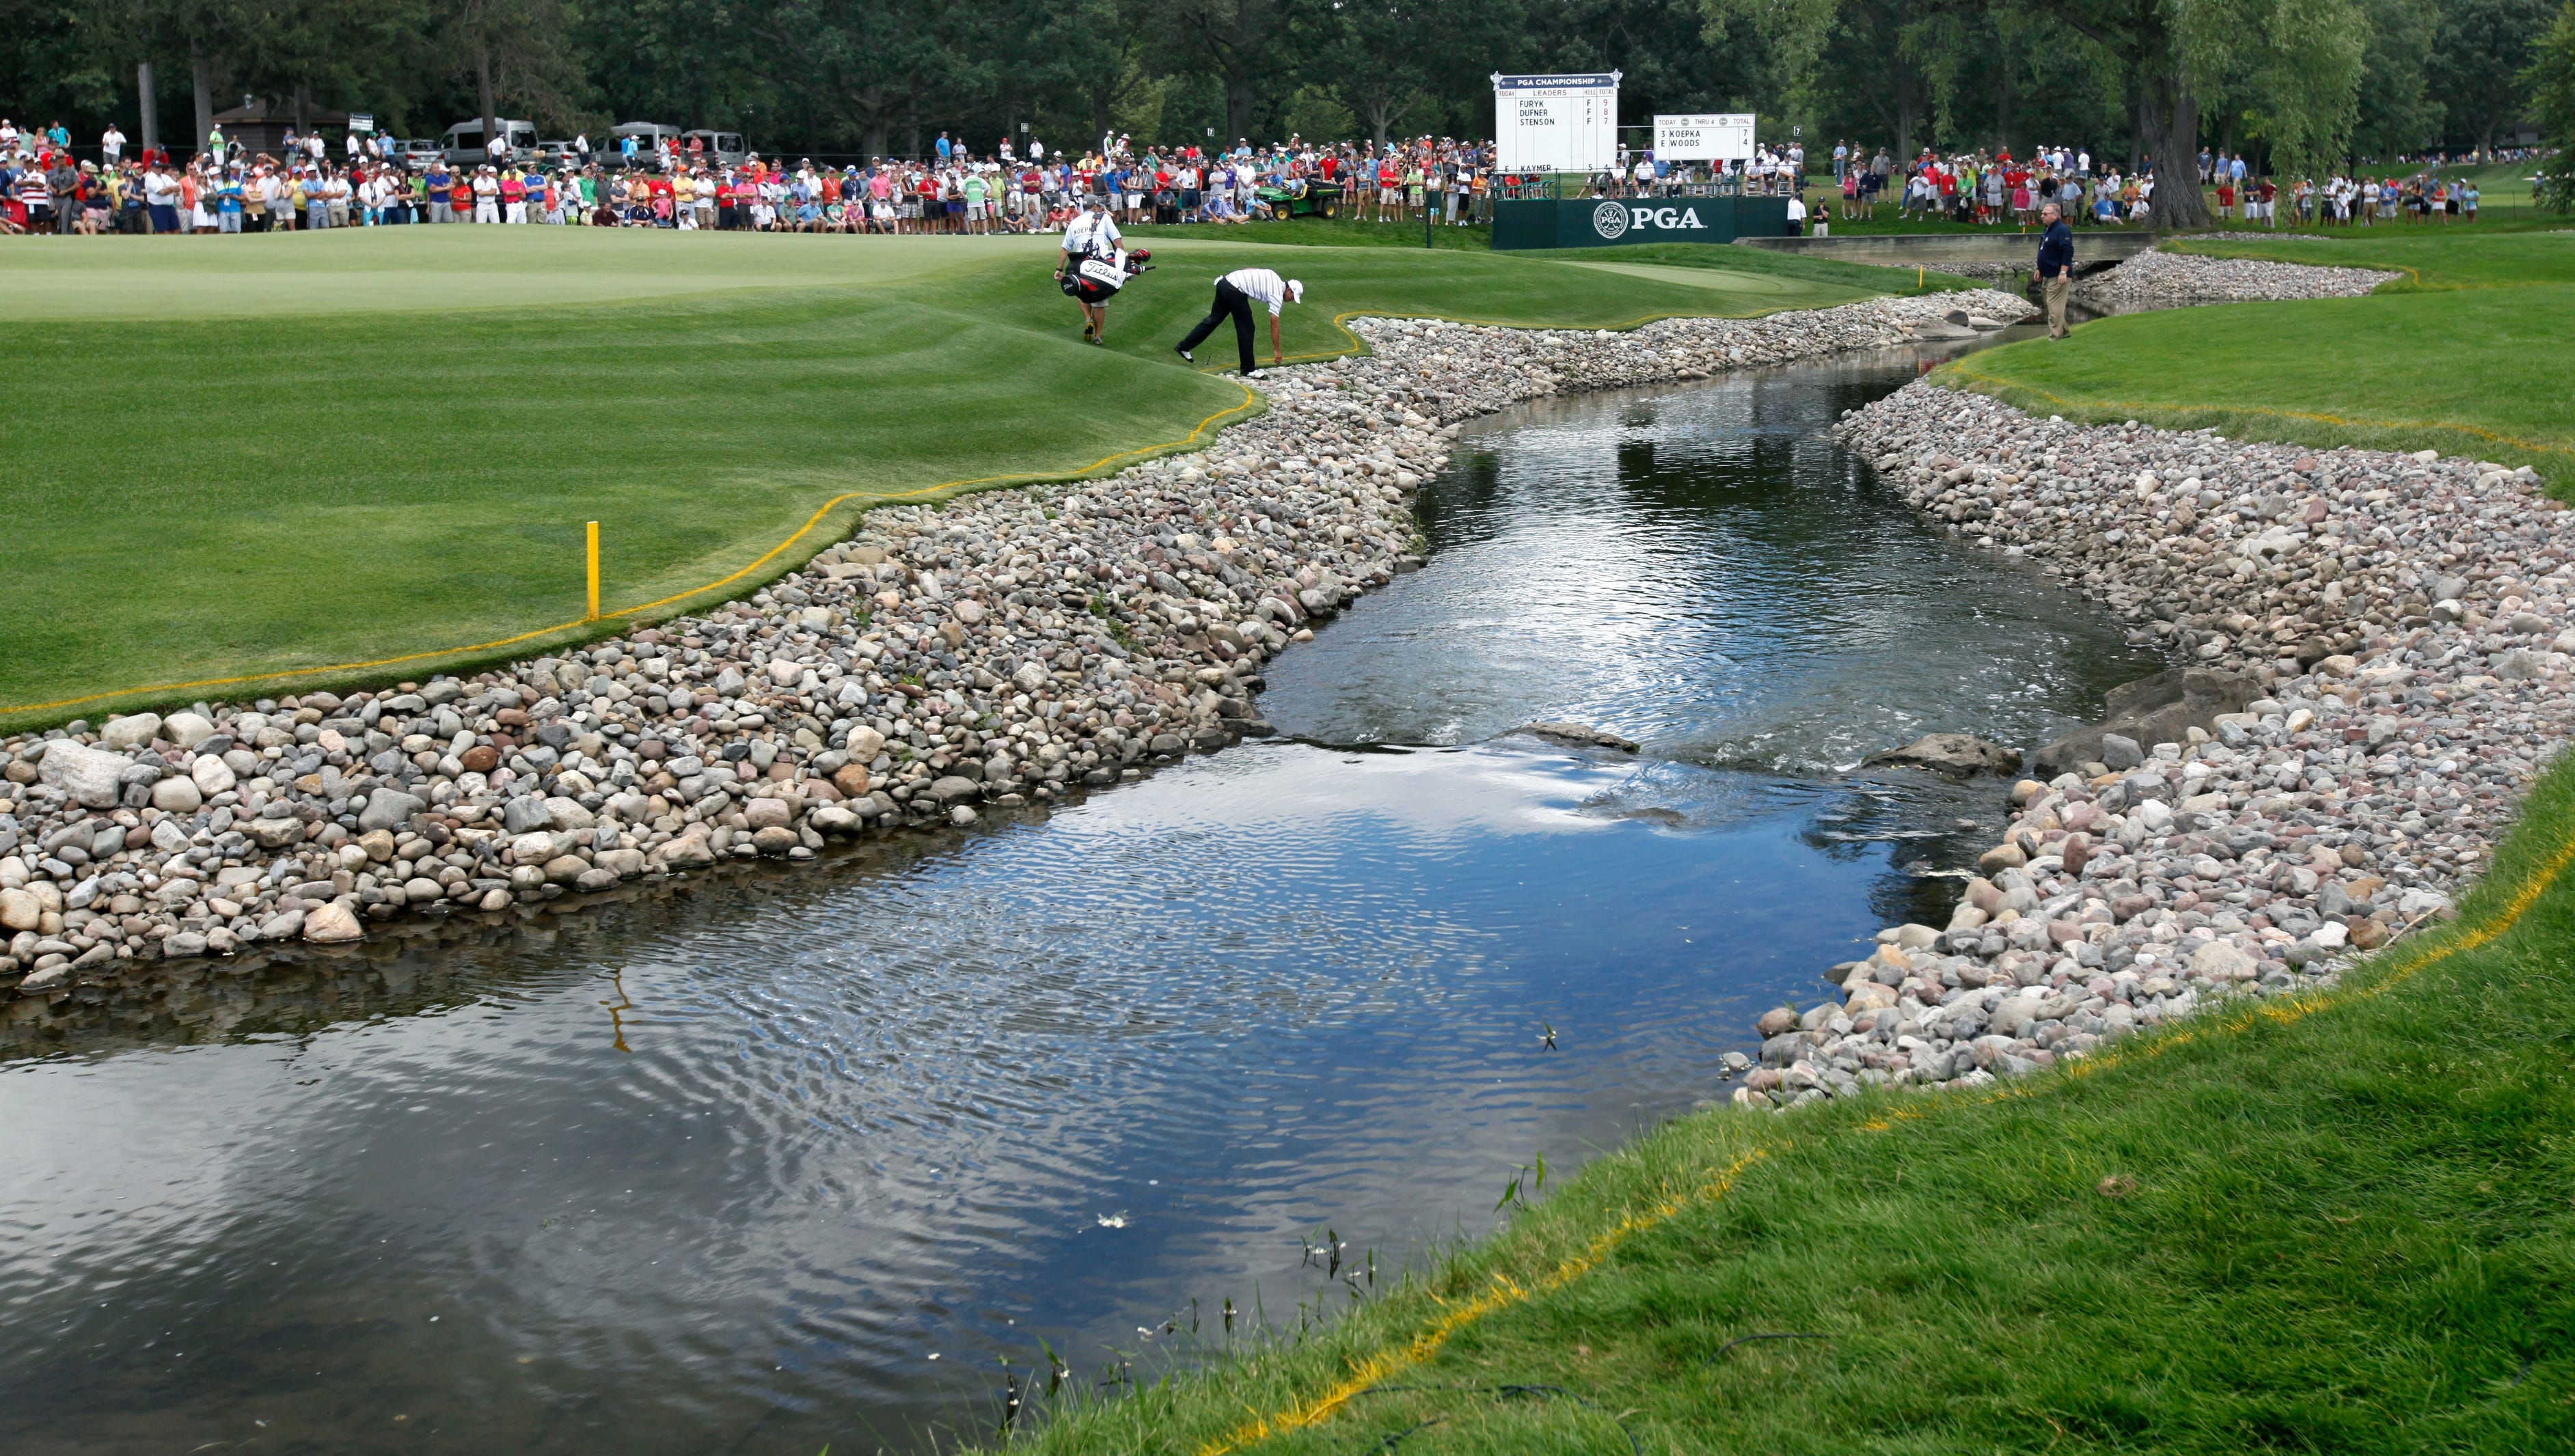 Brook Koepka's ball fell on the rocks before the water on 5 during the final round of the 95th PGA championship at Oak Hill Country Club.